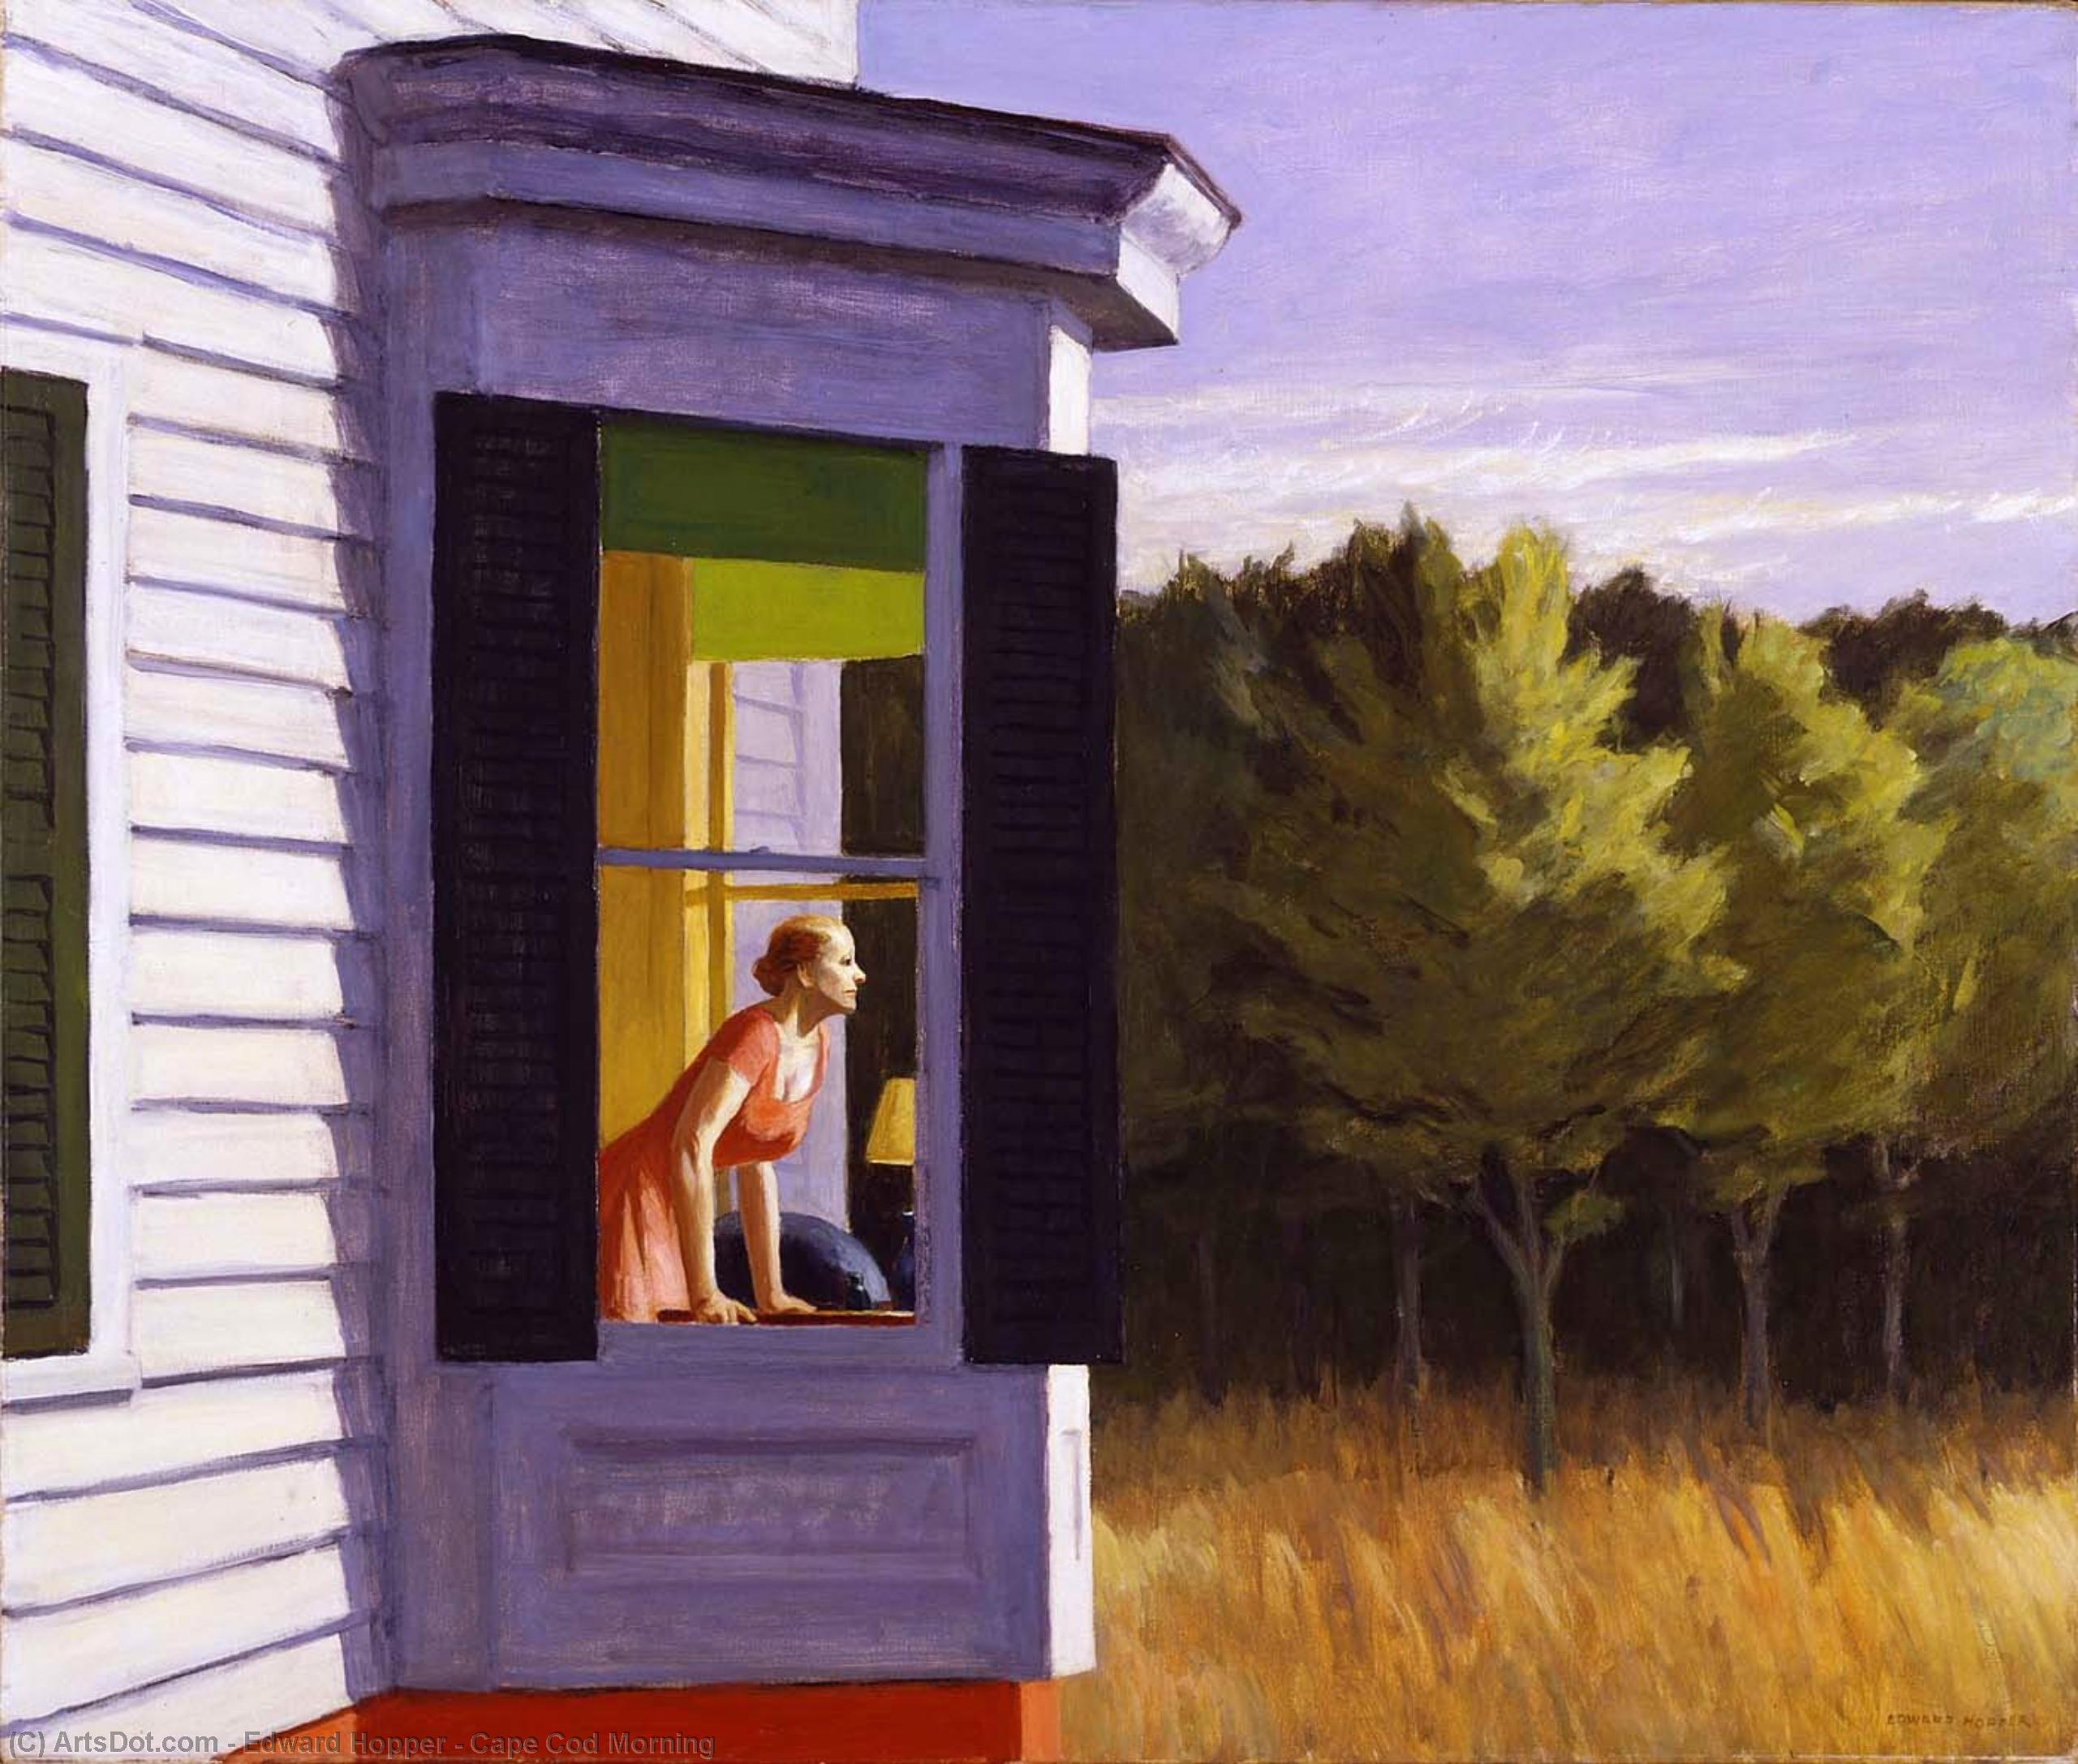 cape cod morning, 1950 de Edward Hopper (1931-1967, United States) |  | ArtsDot.com